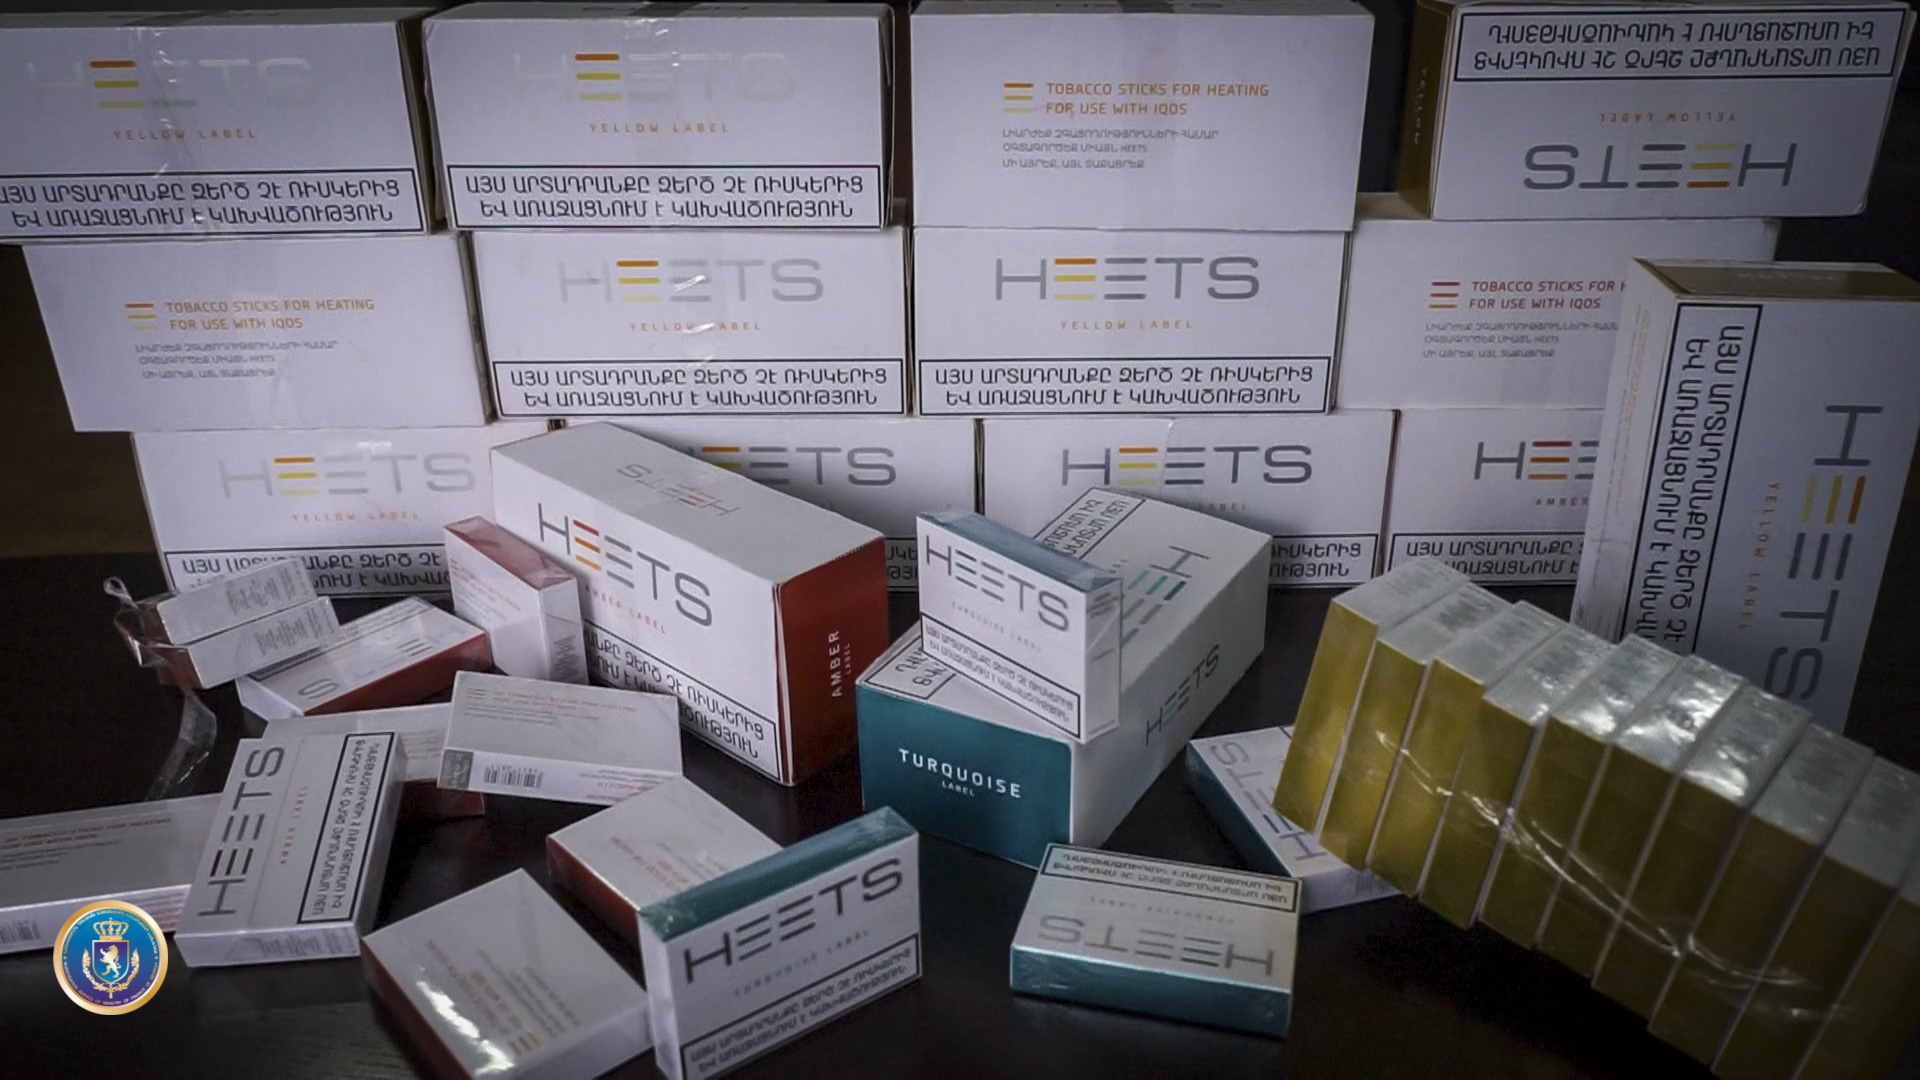 The facts of storage and transportation of cigarettes without excise were observed in Ajara